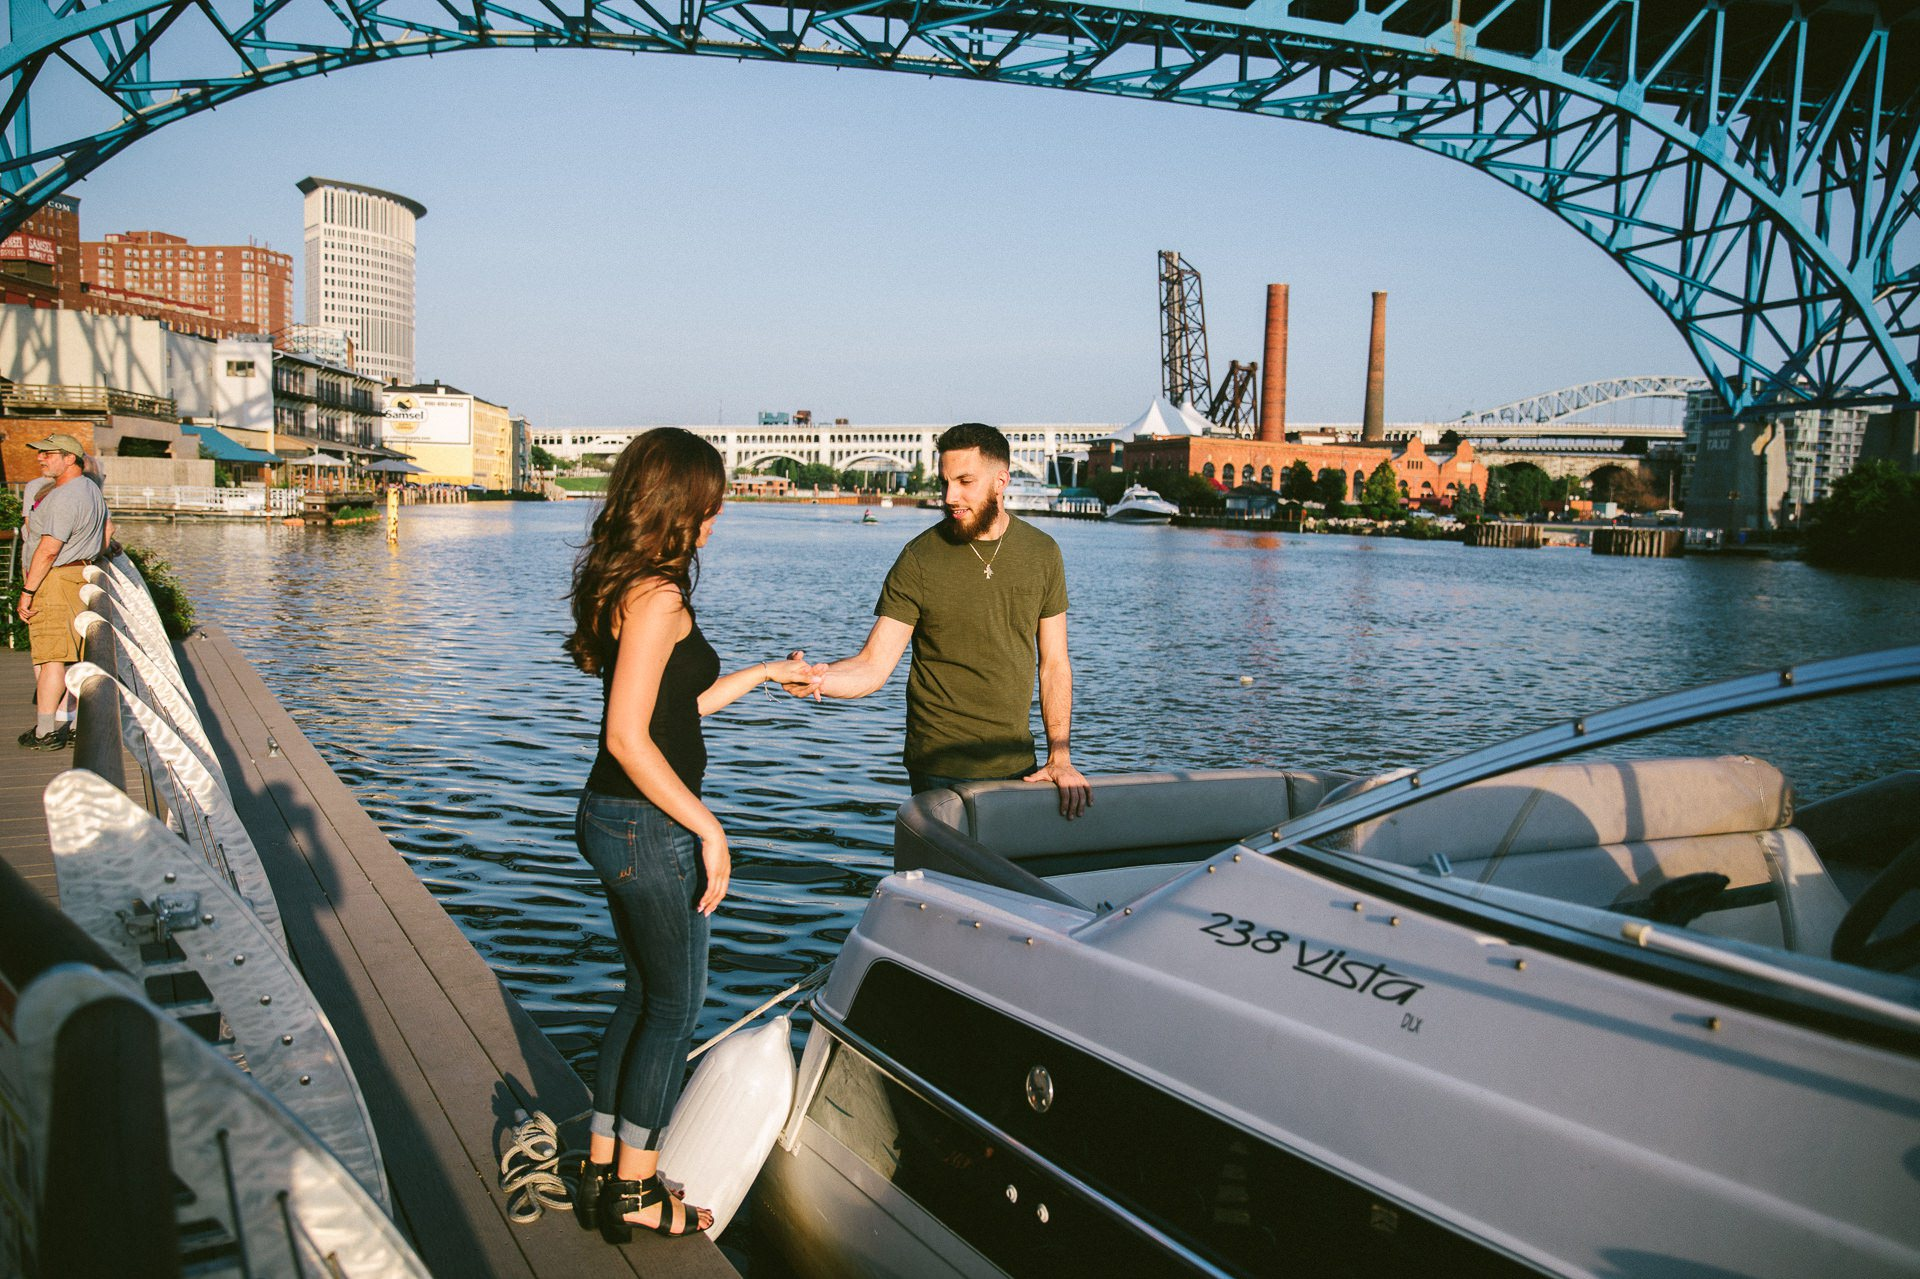 Flats East Bank Engagement Photos 11.jpg